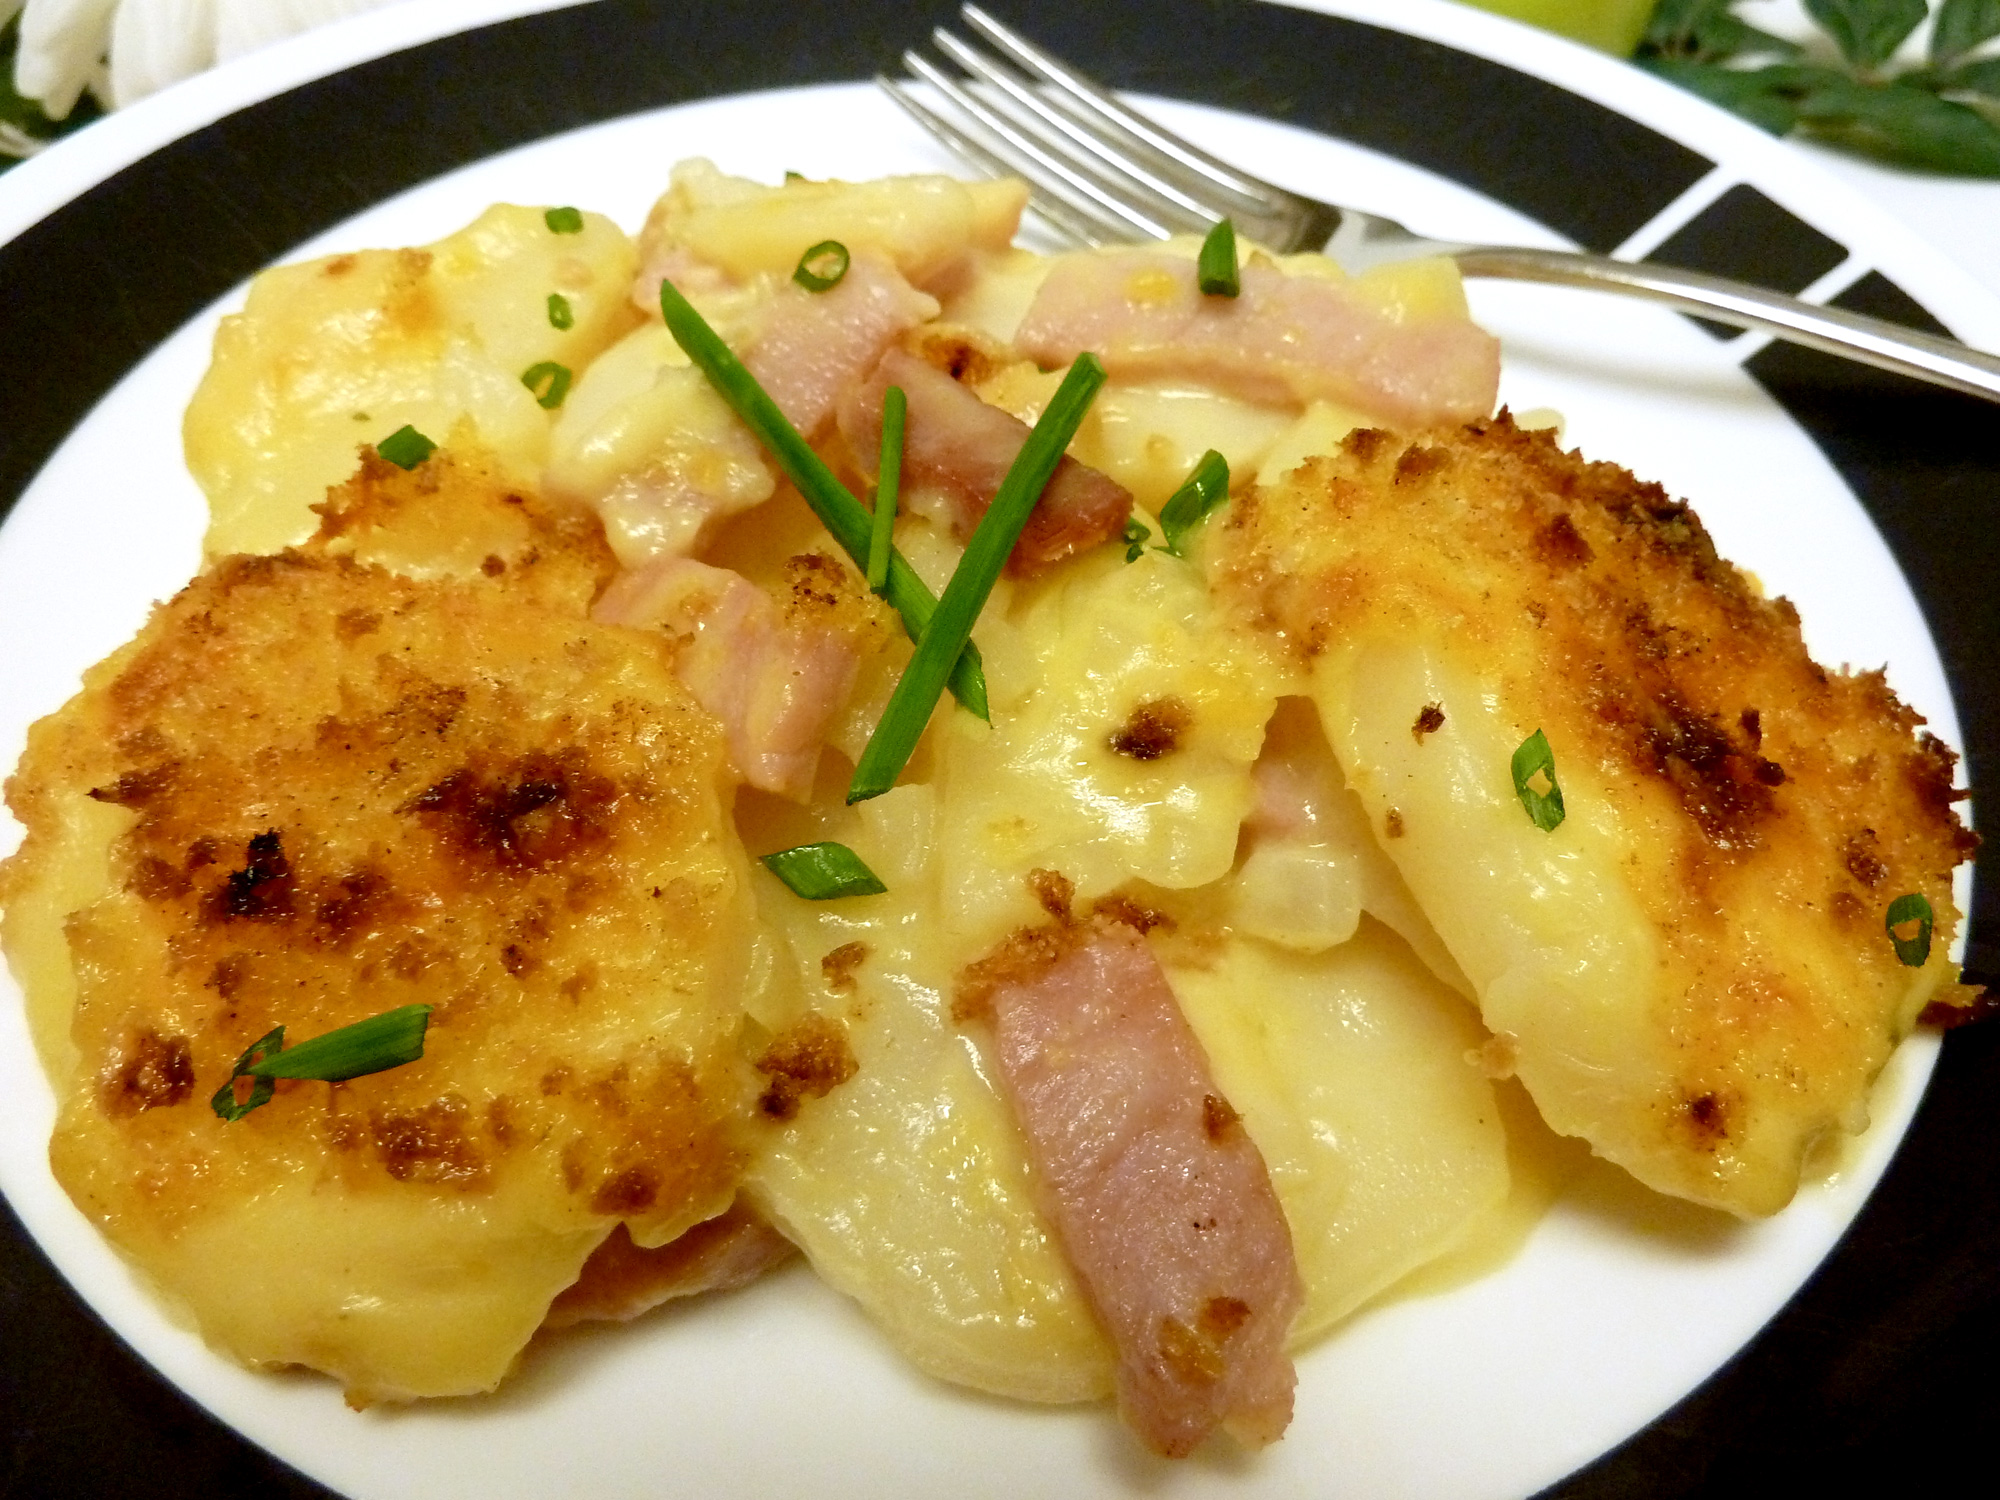 Cheesy scalloped potatoes with ham for a filling meal.